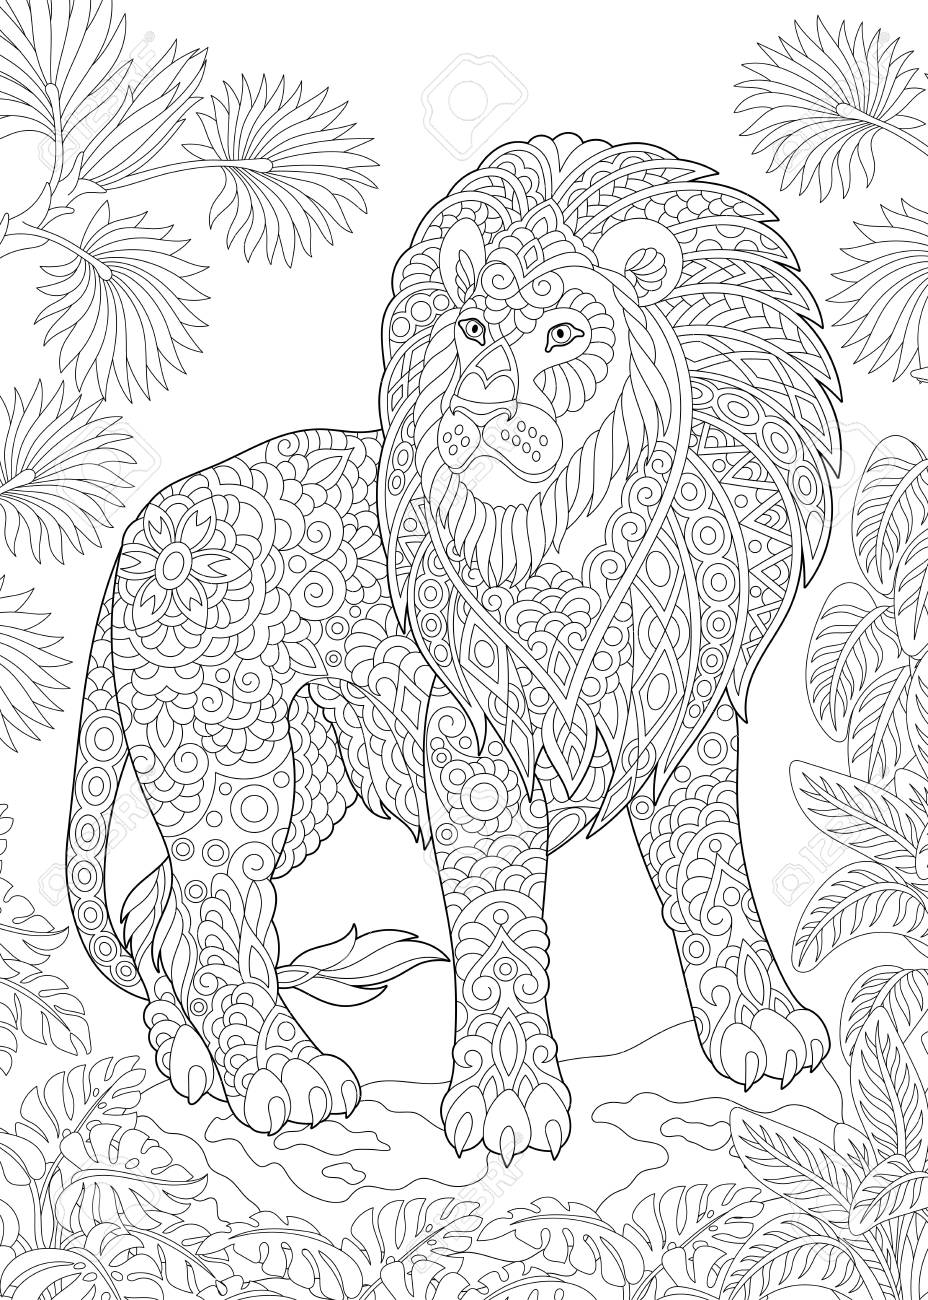 Coloring Page Coloring Book Colouring Picture With Lion Antistress Royalty Free Cliparts Vectors And Stock Illustration Image 107856852 All our images are transparent and free for personal use. coloring page coloring book colouring picture with lion antistress